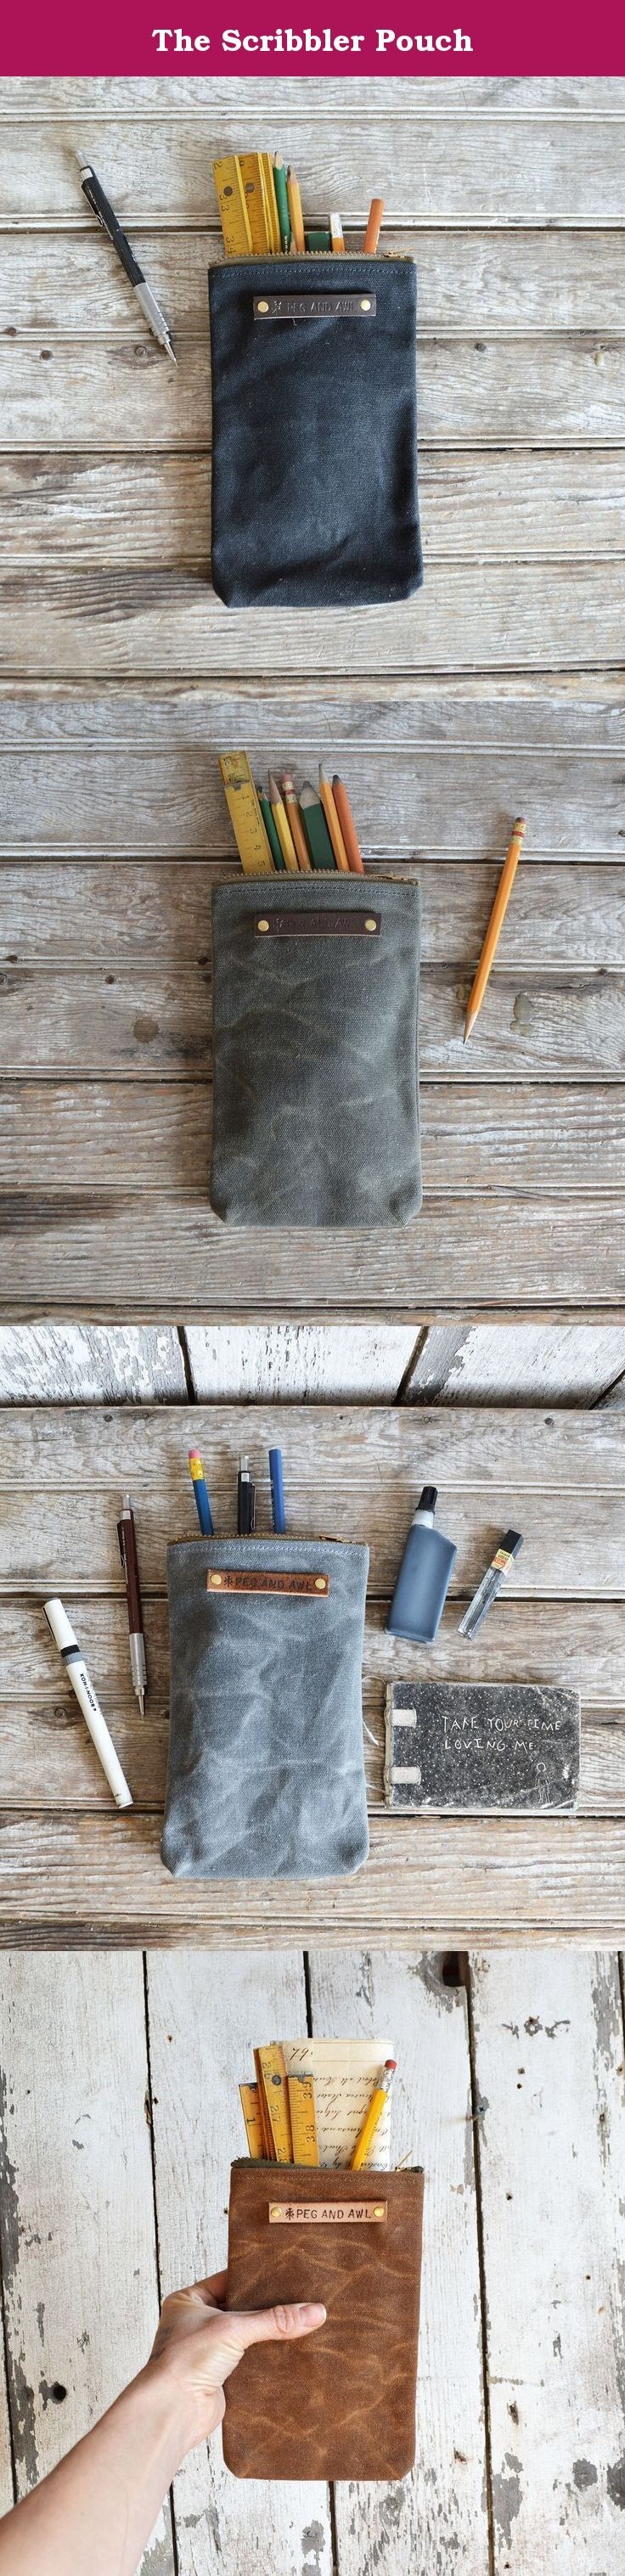 The Scribbler Pouch. The Scribbler is the perfect case for a writer, a drawer or scribbler. Great for pens, pencils and even a little journal. This pouch is the perfect addition for a bag that needs another secret spot. Constructed waxed canvas originated in the sailing industry in Scotland in the 1920s and became widely used in sportswear and apparel because of its waterproofing abilities and superb durability. 15 oz. waxed duck canvas (19 oz. with wax) Vintage zipper colour varies from…